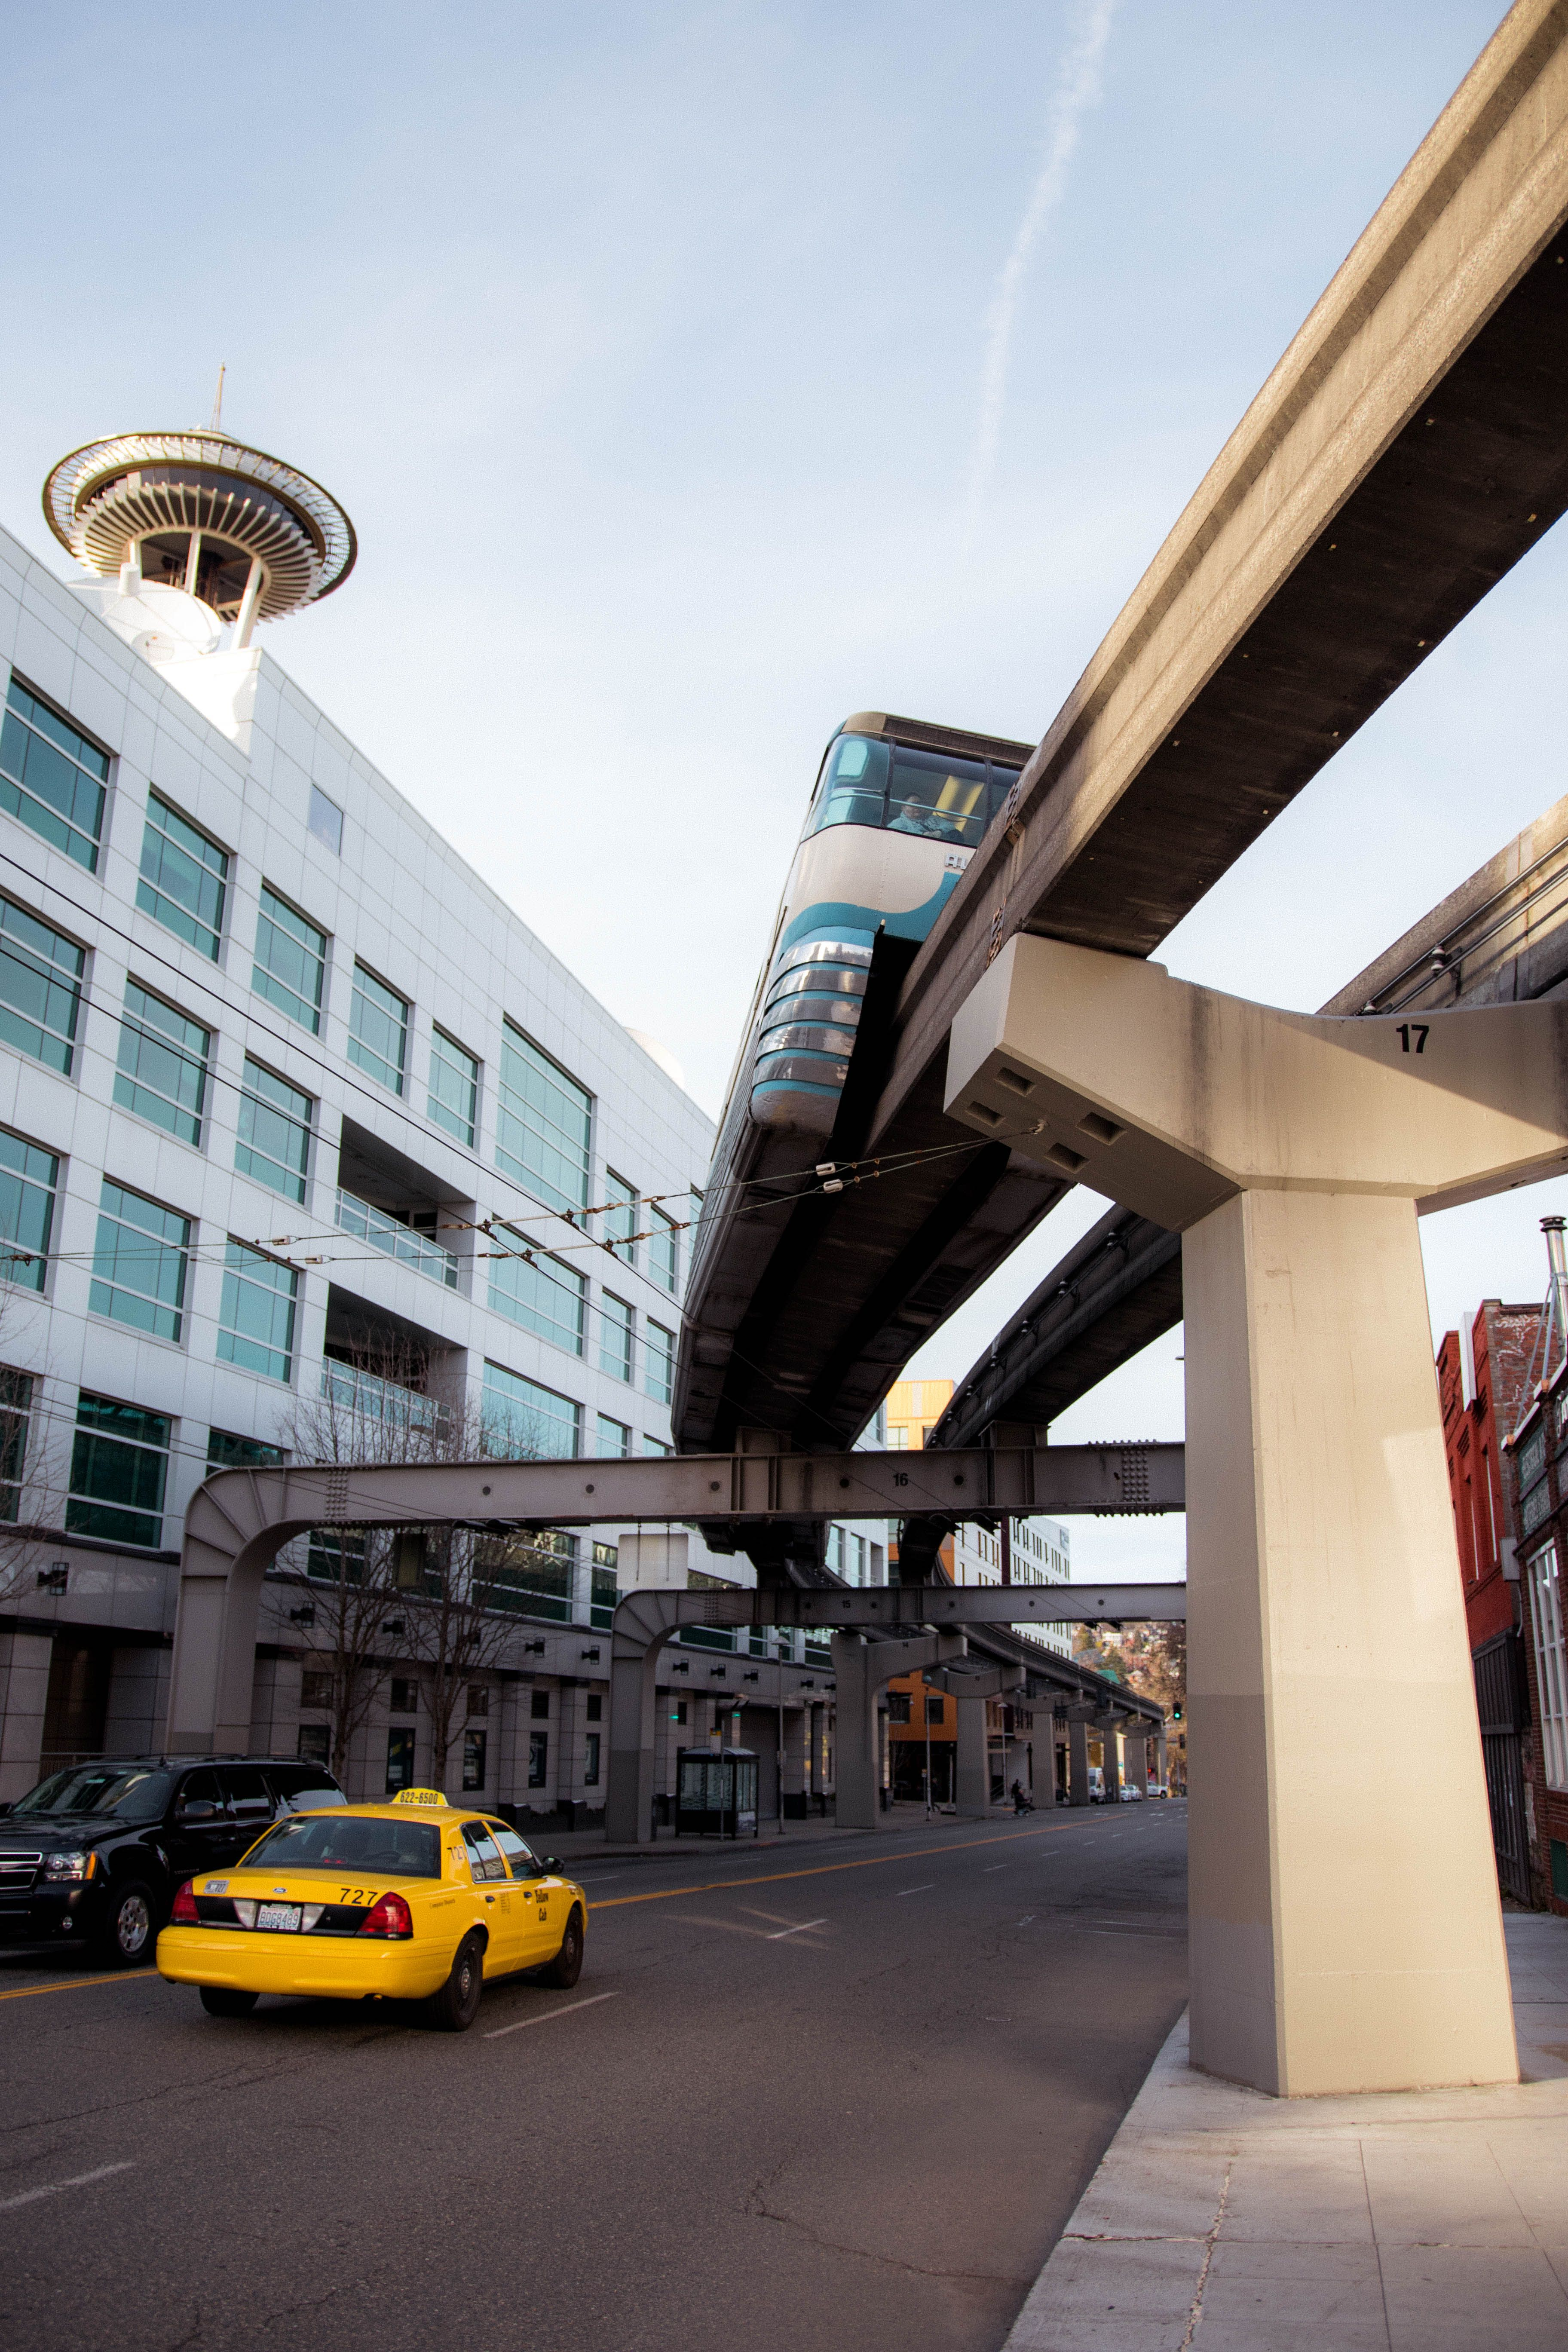 Cars driving underneath the seattle elevated train